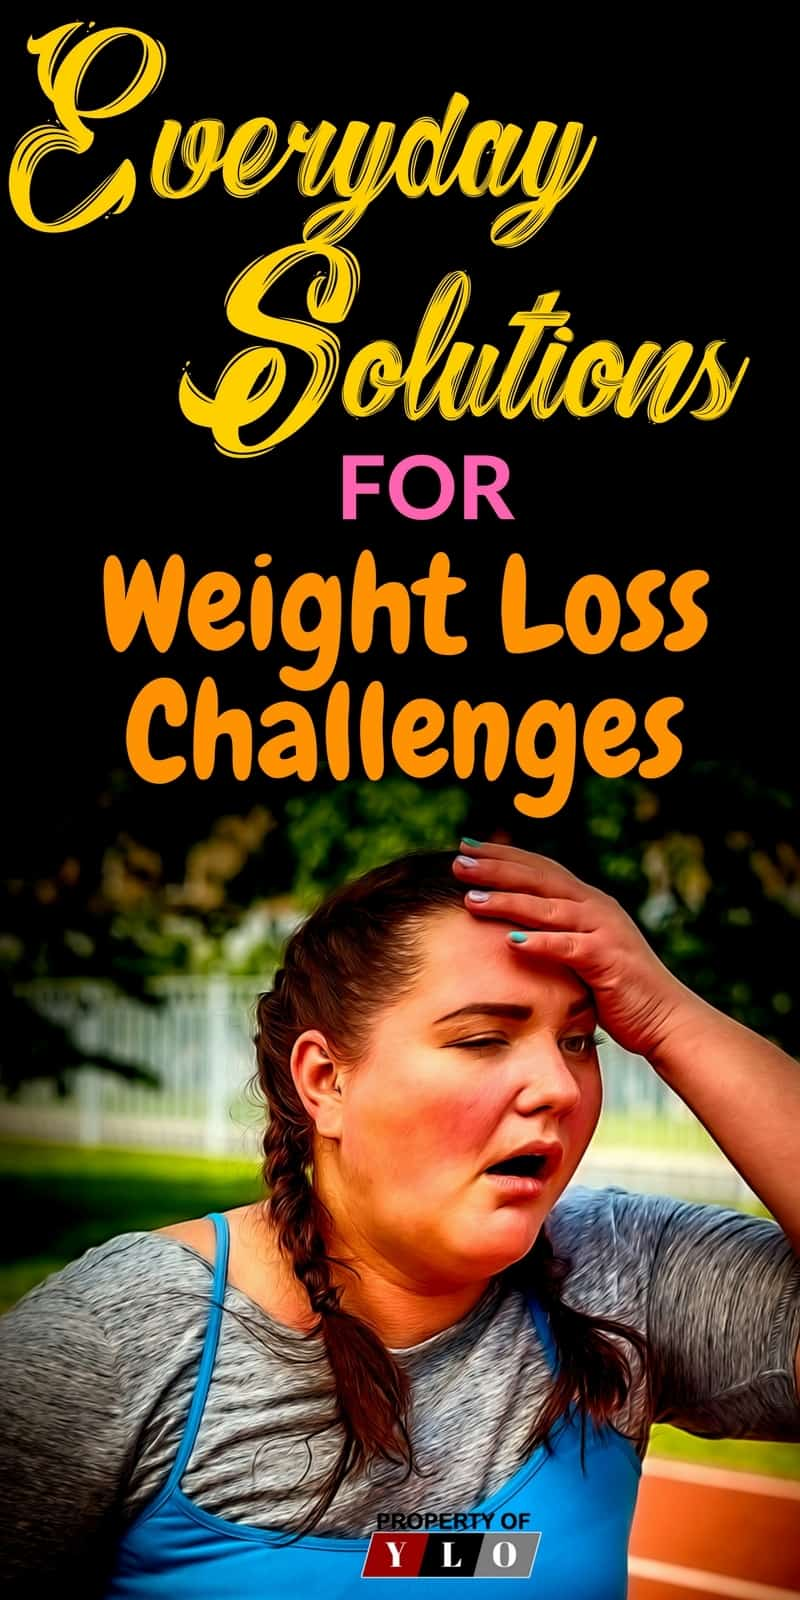 Losing weight is one of the most difficult activities for anyone, so to help, we are providing you with everyday solutions for weight loss challenges. This works for Excercise, Excercise Motivation, Excercise For Beginners, Excercise for Women, workout, Fitness Motivation, Fitness for men, Fitness for women, weight loss, Lose Weight, Fat Burning, fat loss, lose fat, Quick weight loss, better health, clean living, wellness, wellness tips, lifestyle tips, healthy lifestyle tips, health tips.